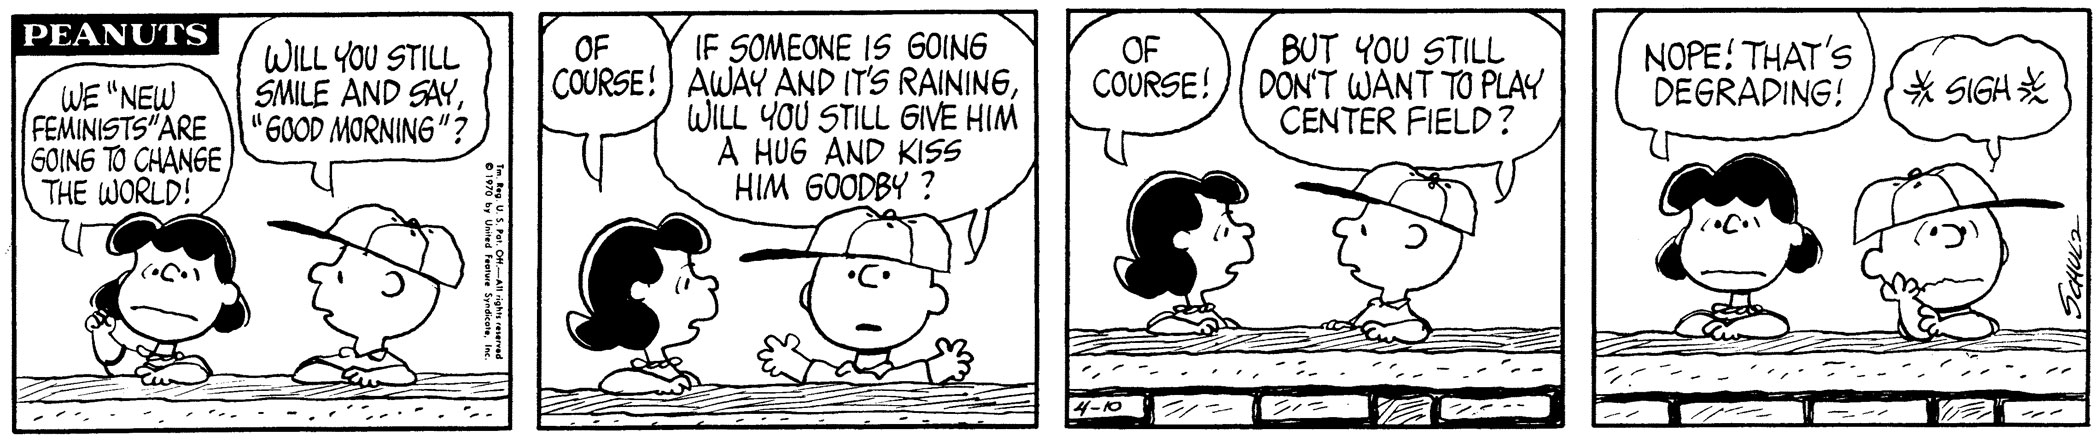 Peanuts, April 10, 1970 By the early 1970s, the National Organization for Women had more than 400 local chapters. Together with the National Women's Political Caucus and other advocacy groups, they pressed for gender reform on issues such as equal pay, education, and reproductive rights. With her outspoken and unabashed persona, Lucy Van Pelt spoke to the ideology of the feminist movement in Peanuts.